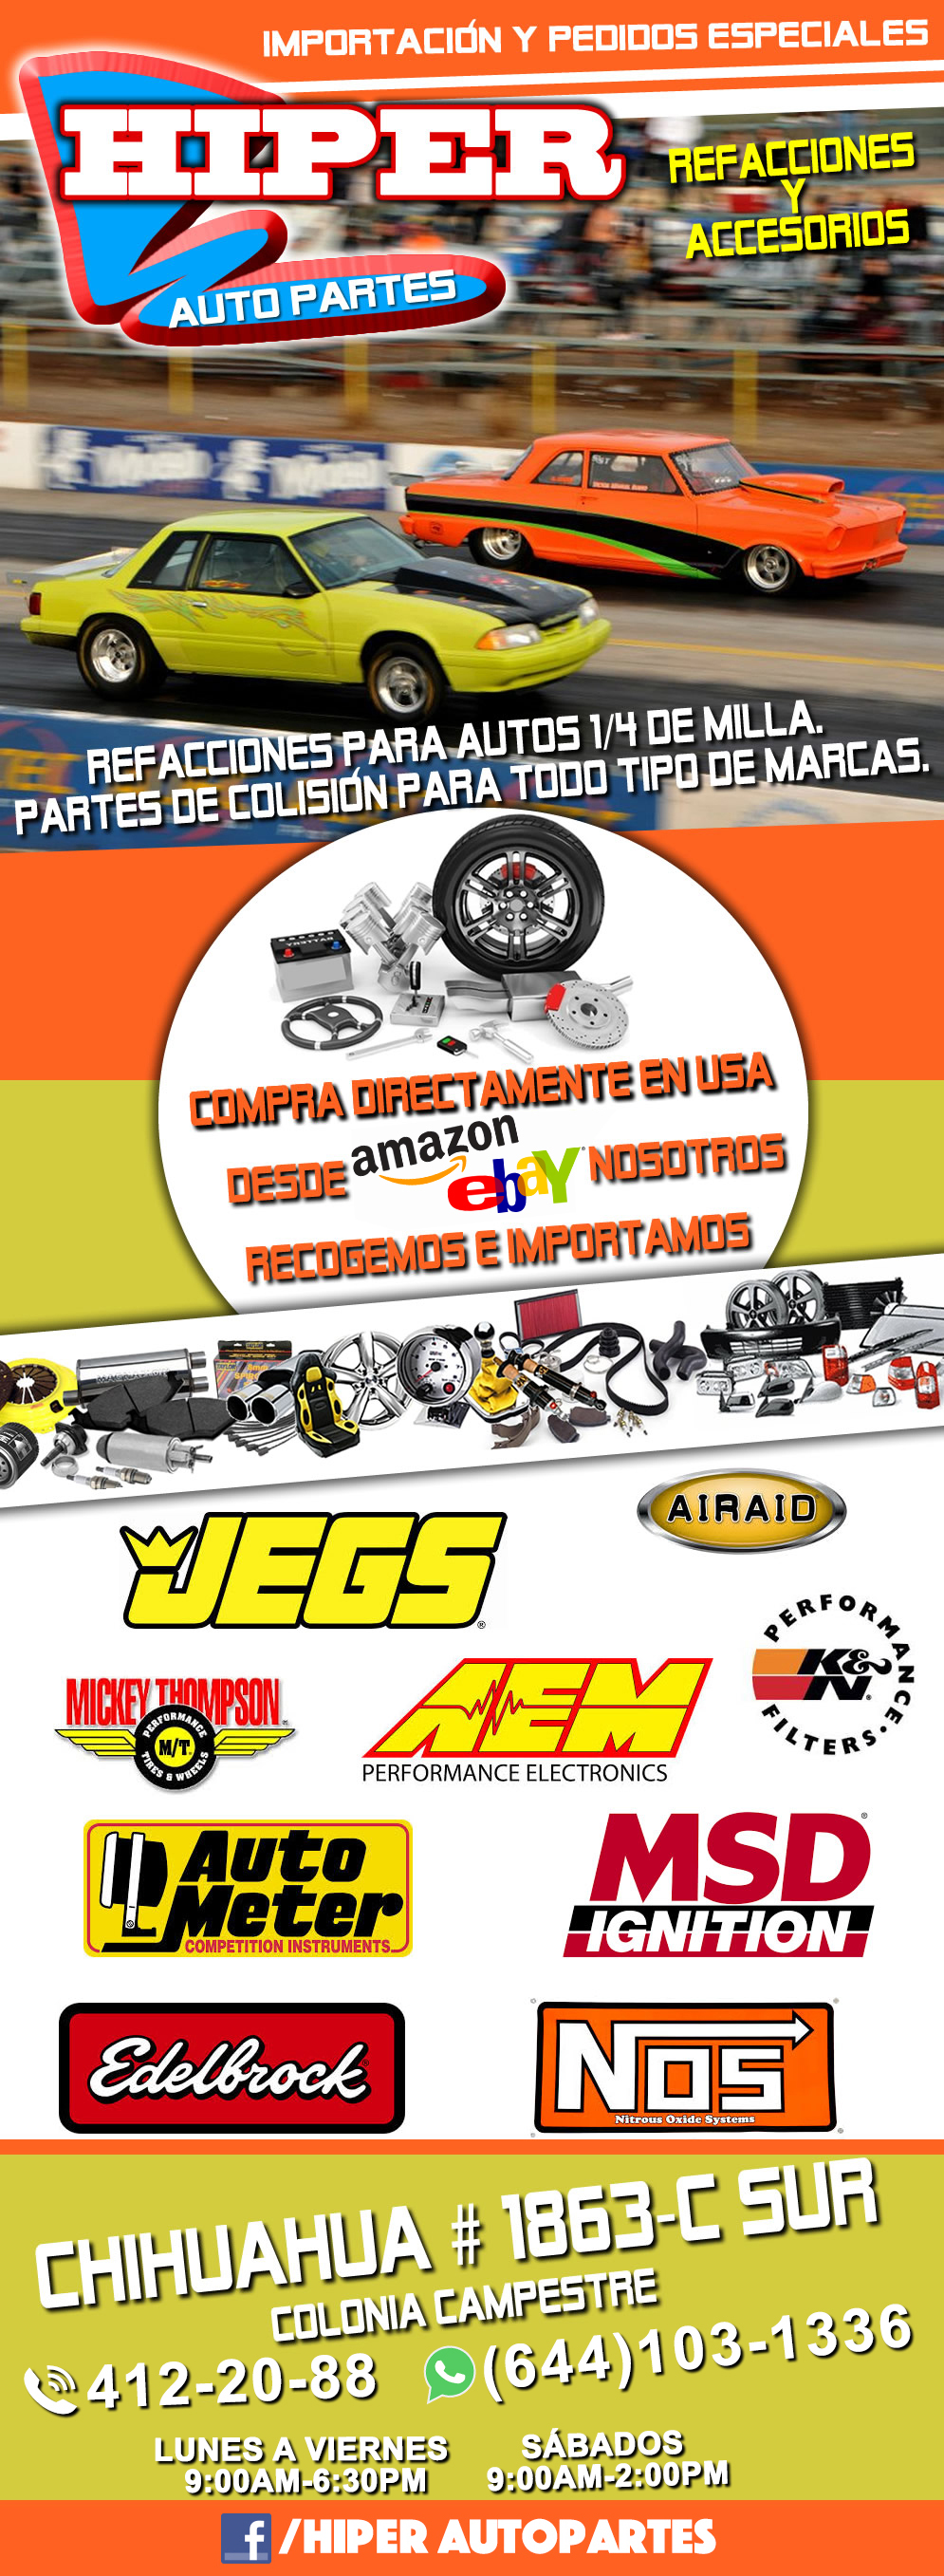 Hiper Auto Partes-Todo para su automóvil, Refacciones y Accesorios, Importación y Pedidos Especiales, Partes de Colisión Todo Tipo de Marcas, Refacciones para autos 1/4 milla !!!!